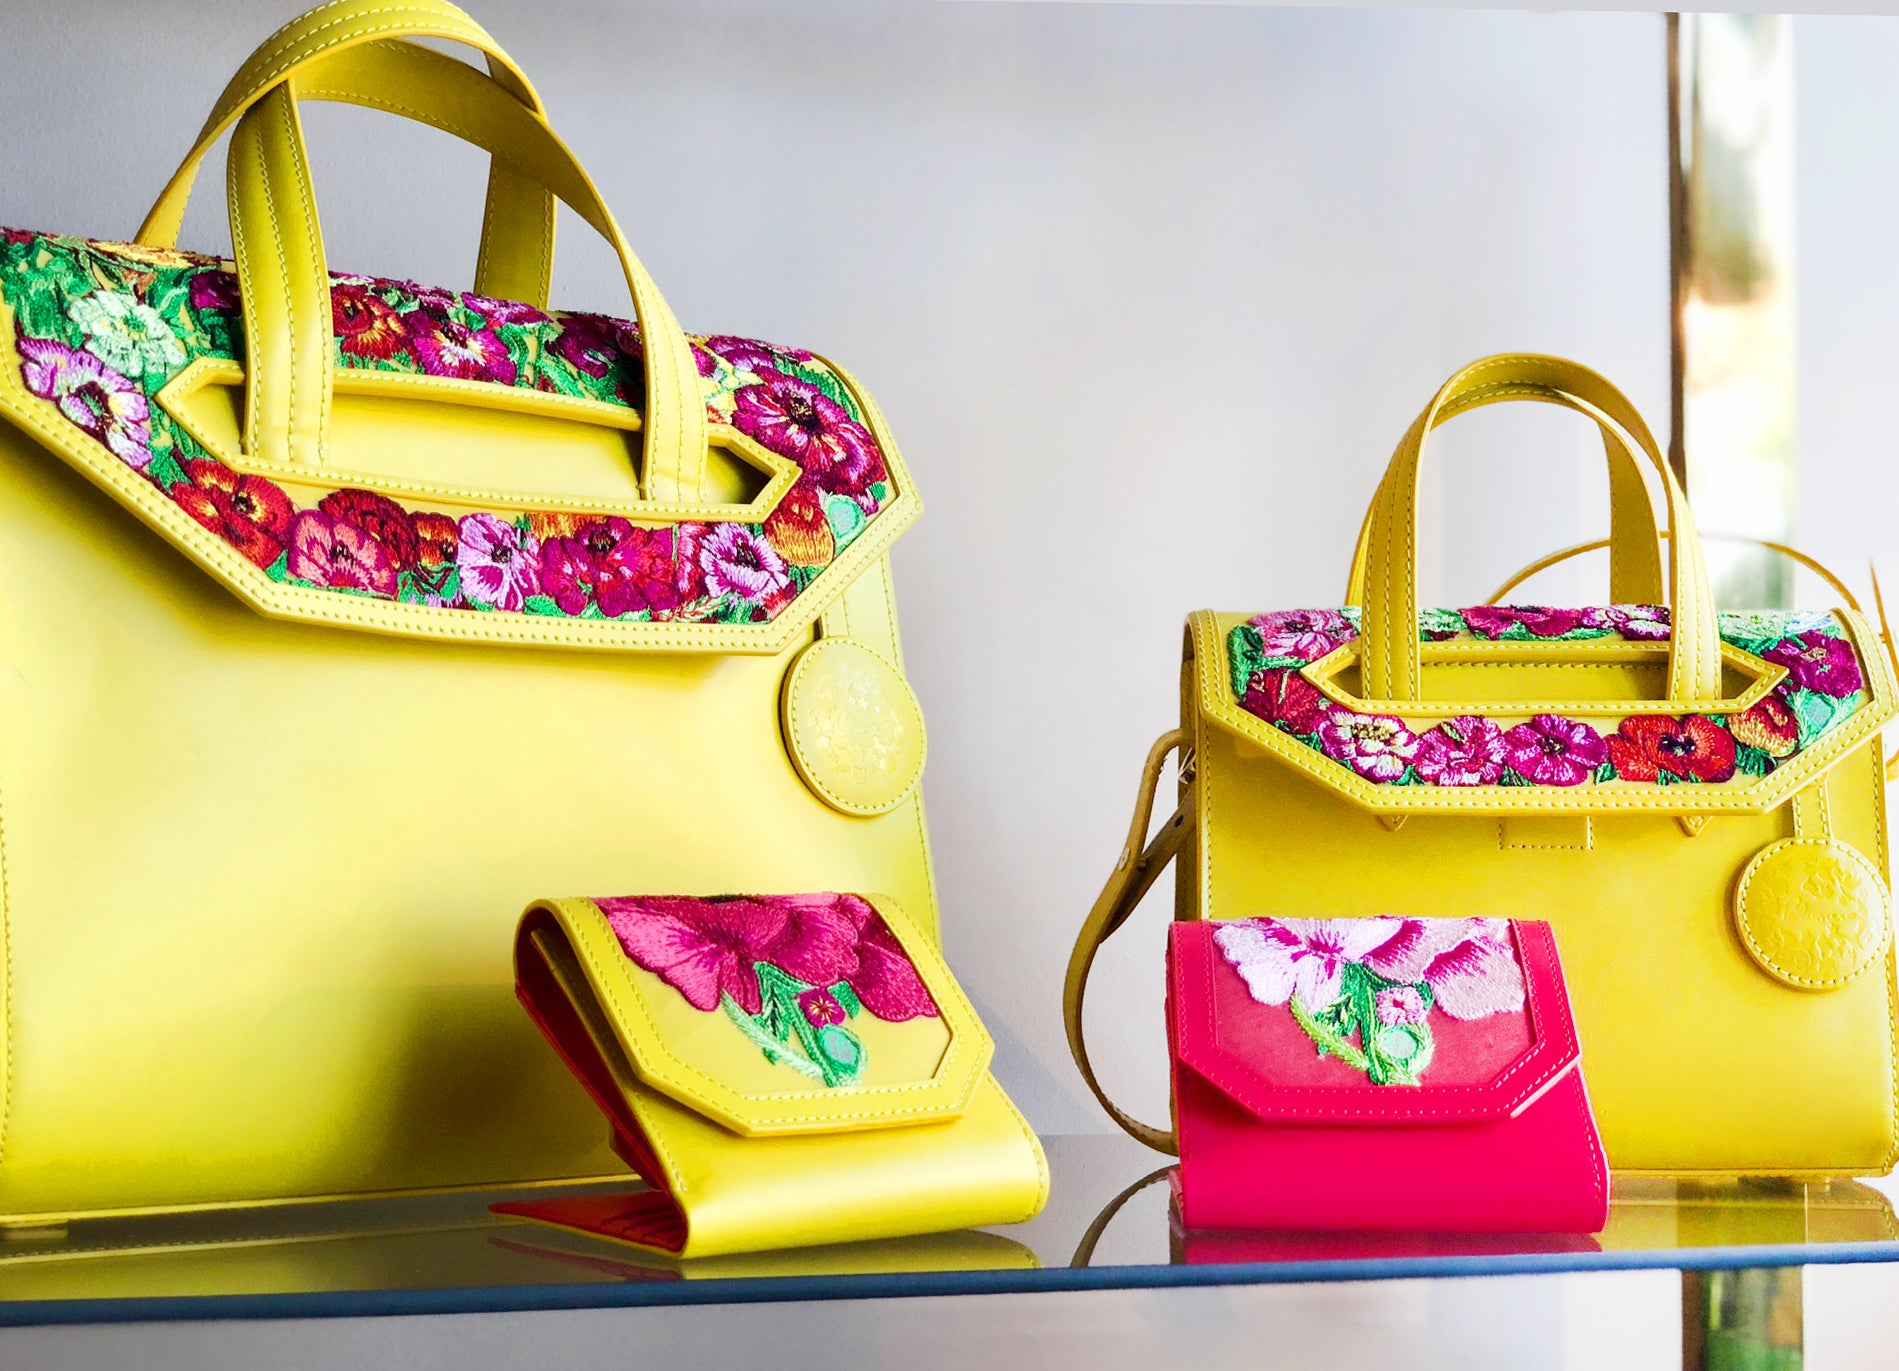 Most gorgeous bags luxurious handbags in yellow, magenta, and beige, hand-embroidered with poppies in exquisite detail. Stunning purse to behold.